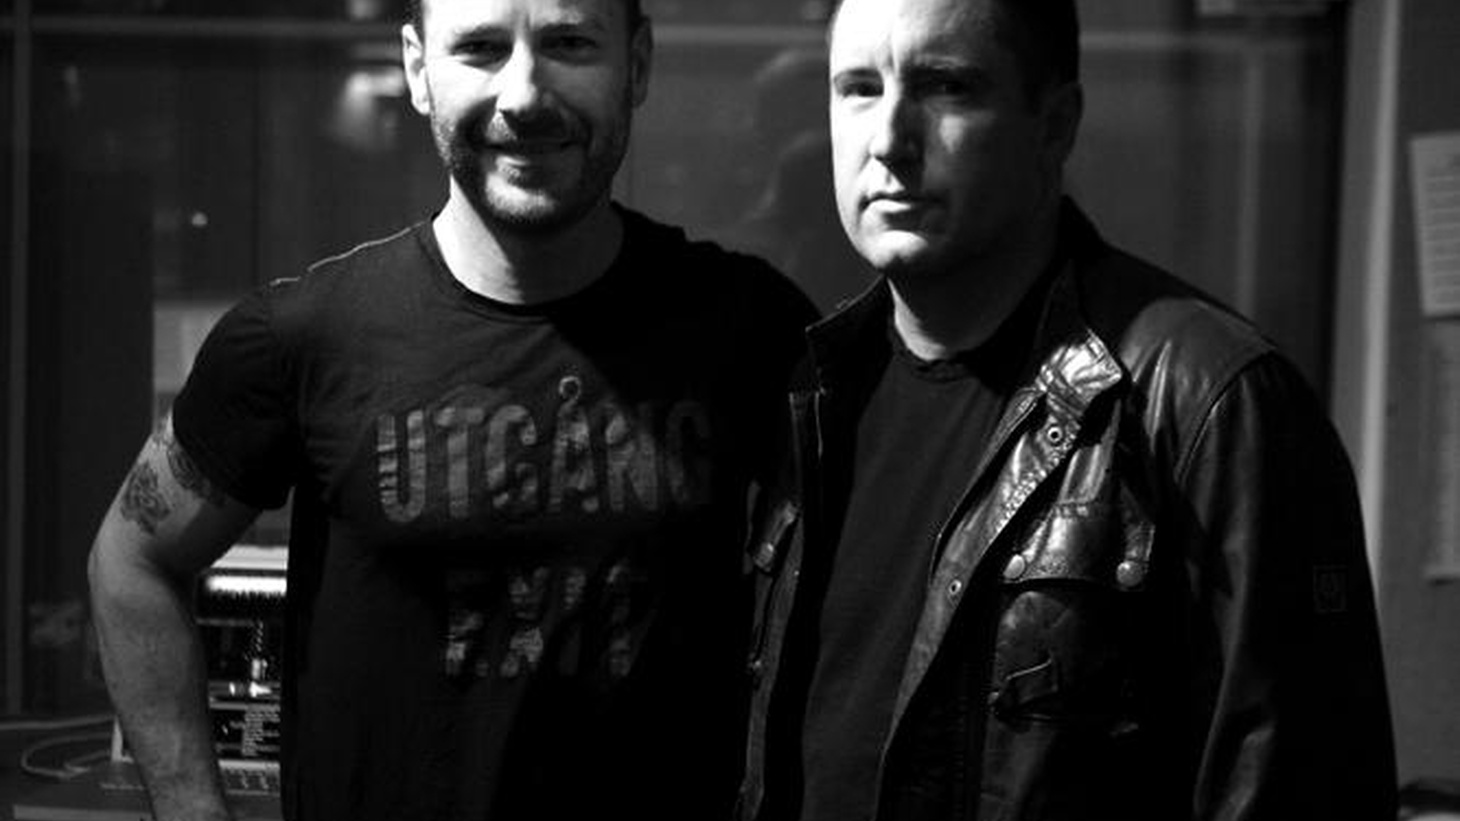 Nine Inch Nail's Trent Reznor returns to discuss his latest work, the score to The Girl with the Dragon Tattoo. He joins us in the 10 o'clock hour.